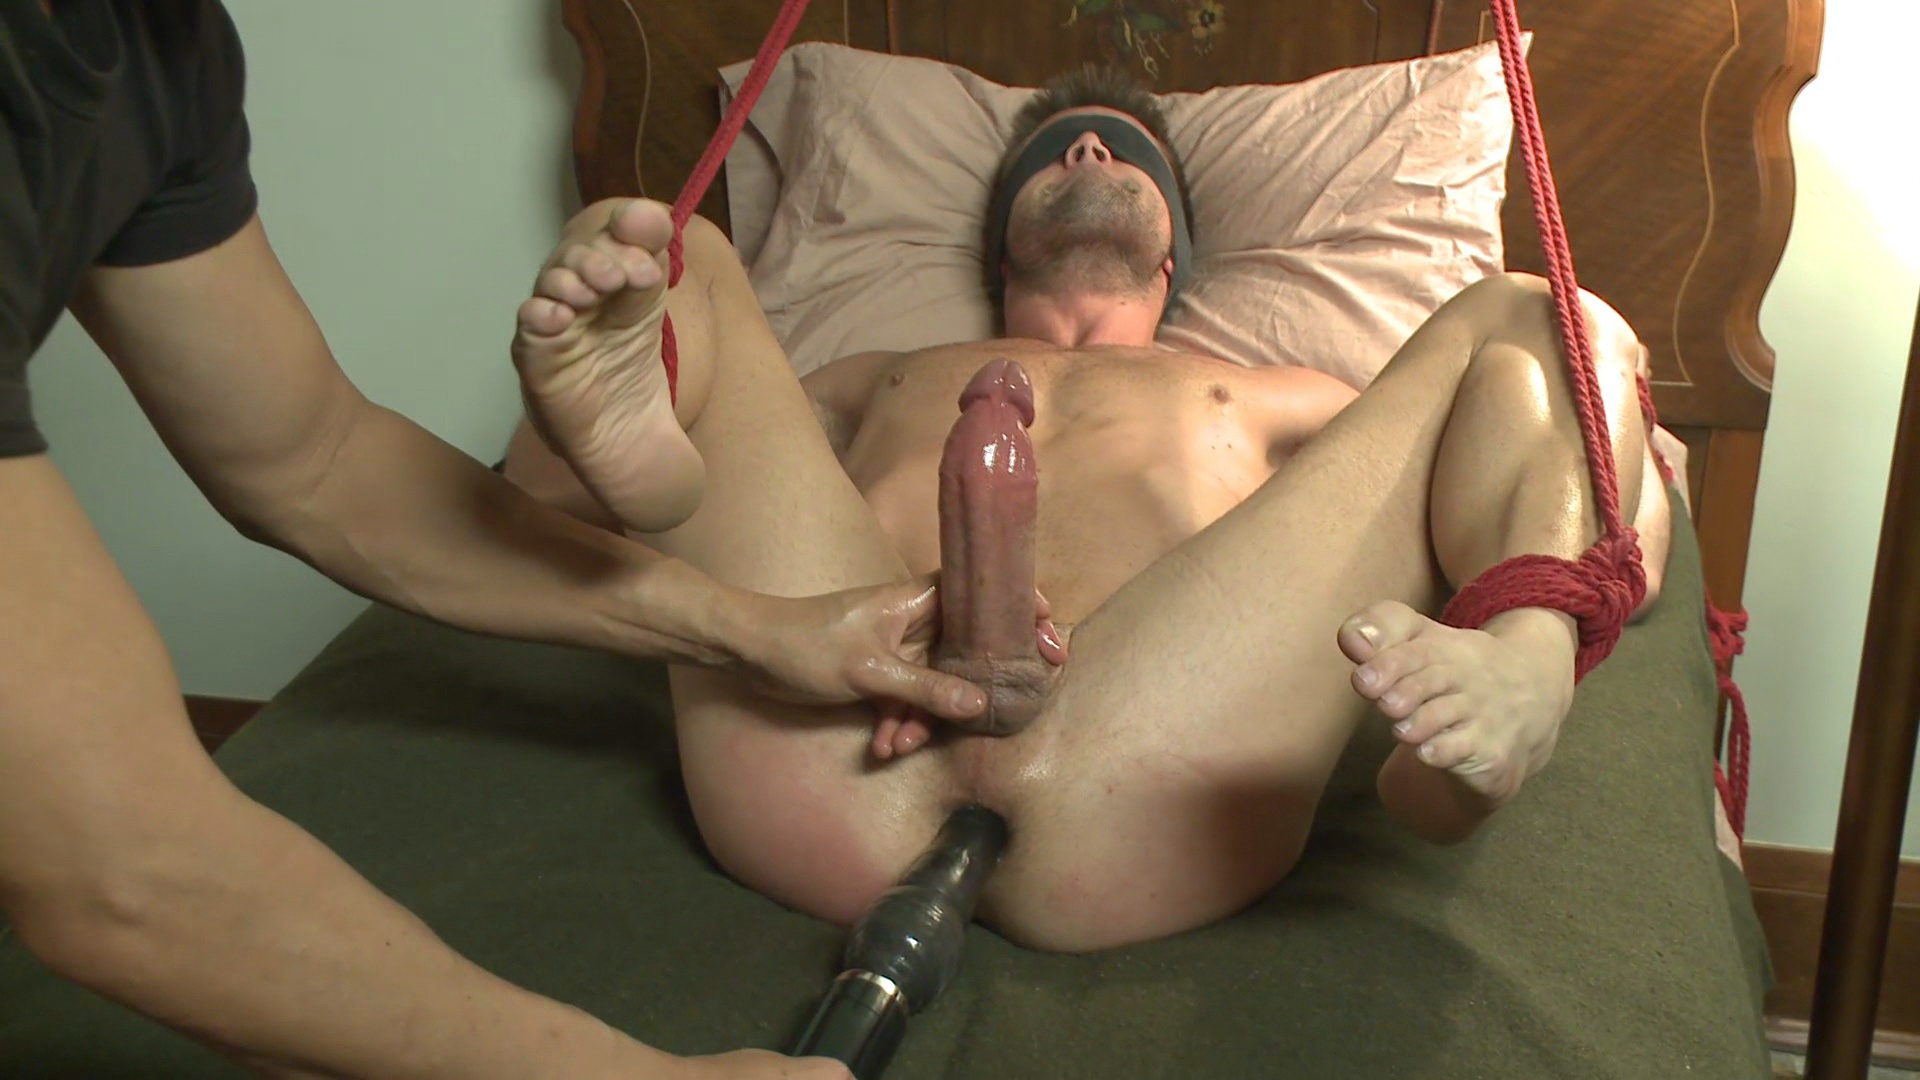 Men On Edge: Big Fat Cock Getting Edged Xvideo gay